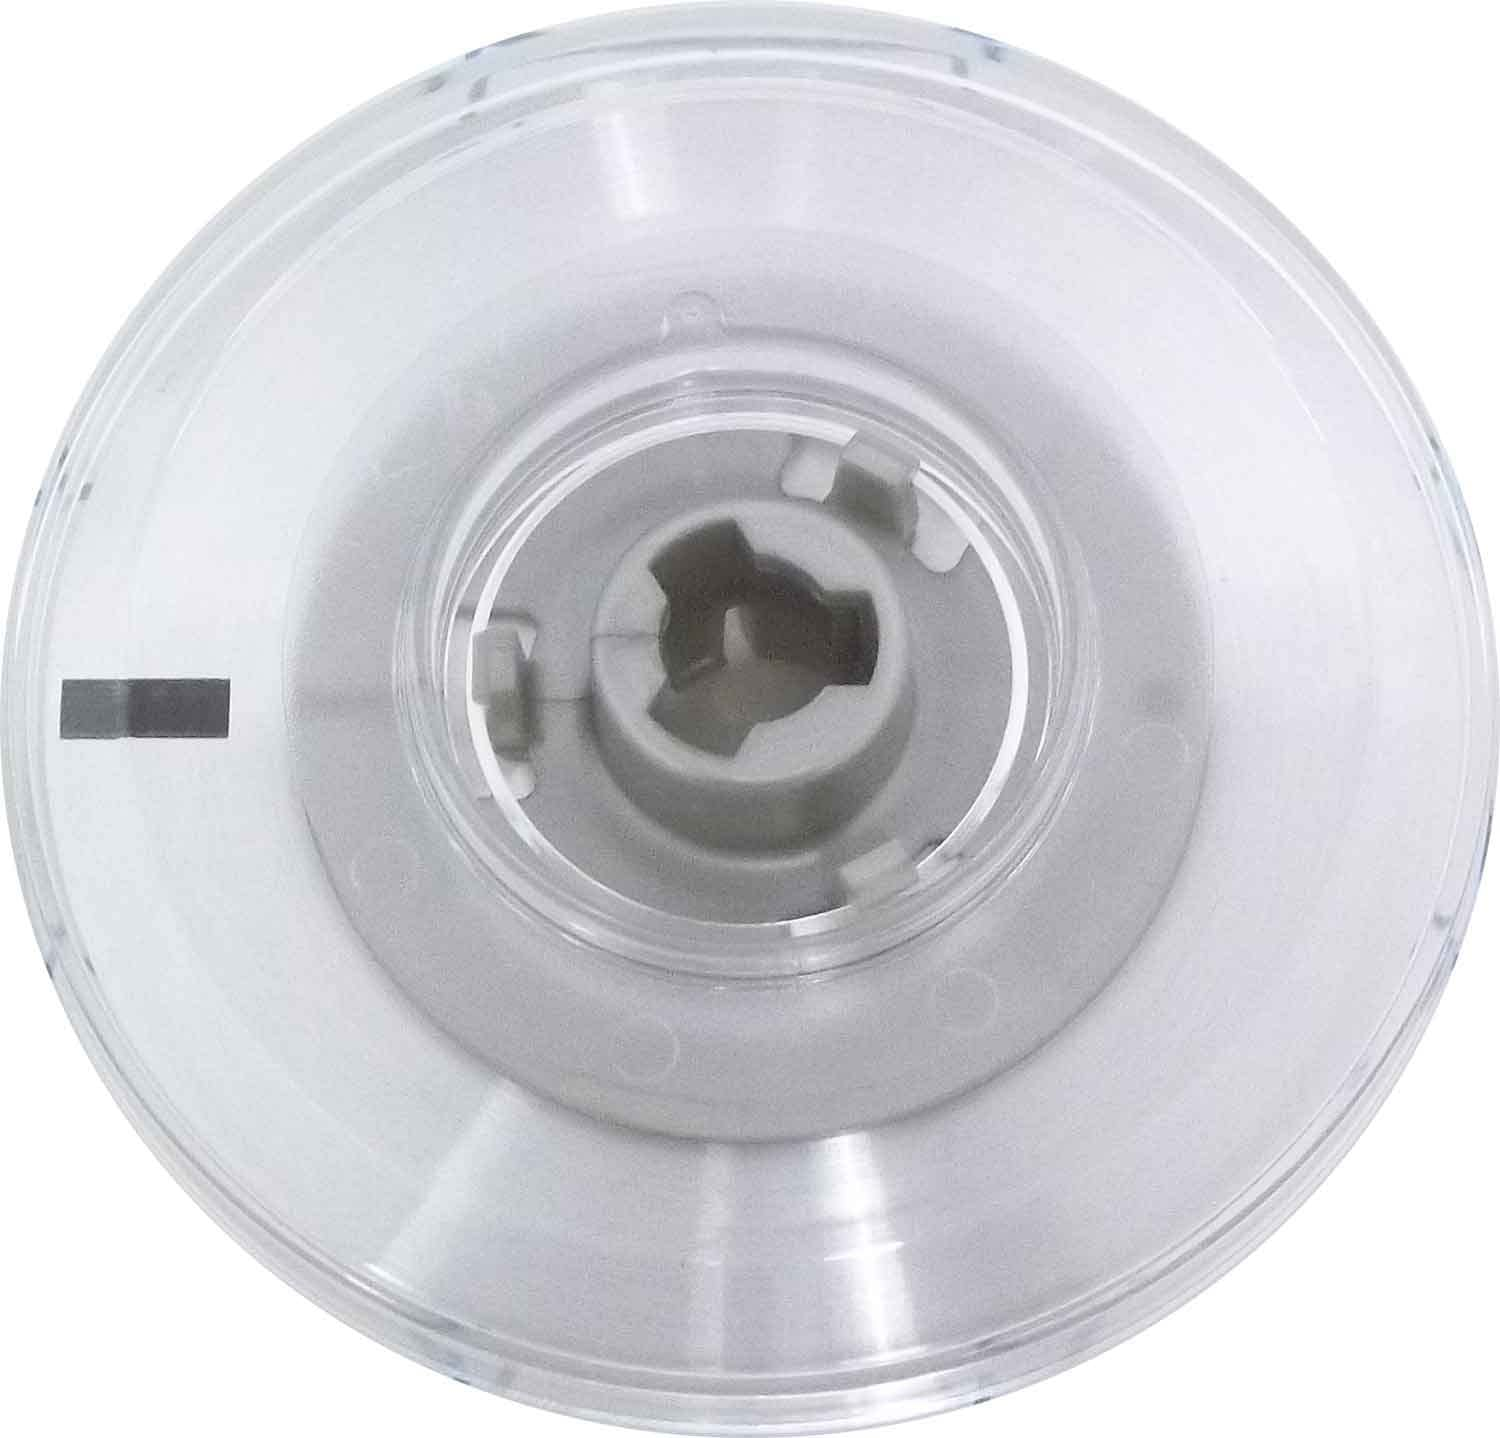 Whirlpool 8544947 Timer Dial for Washer